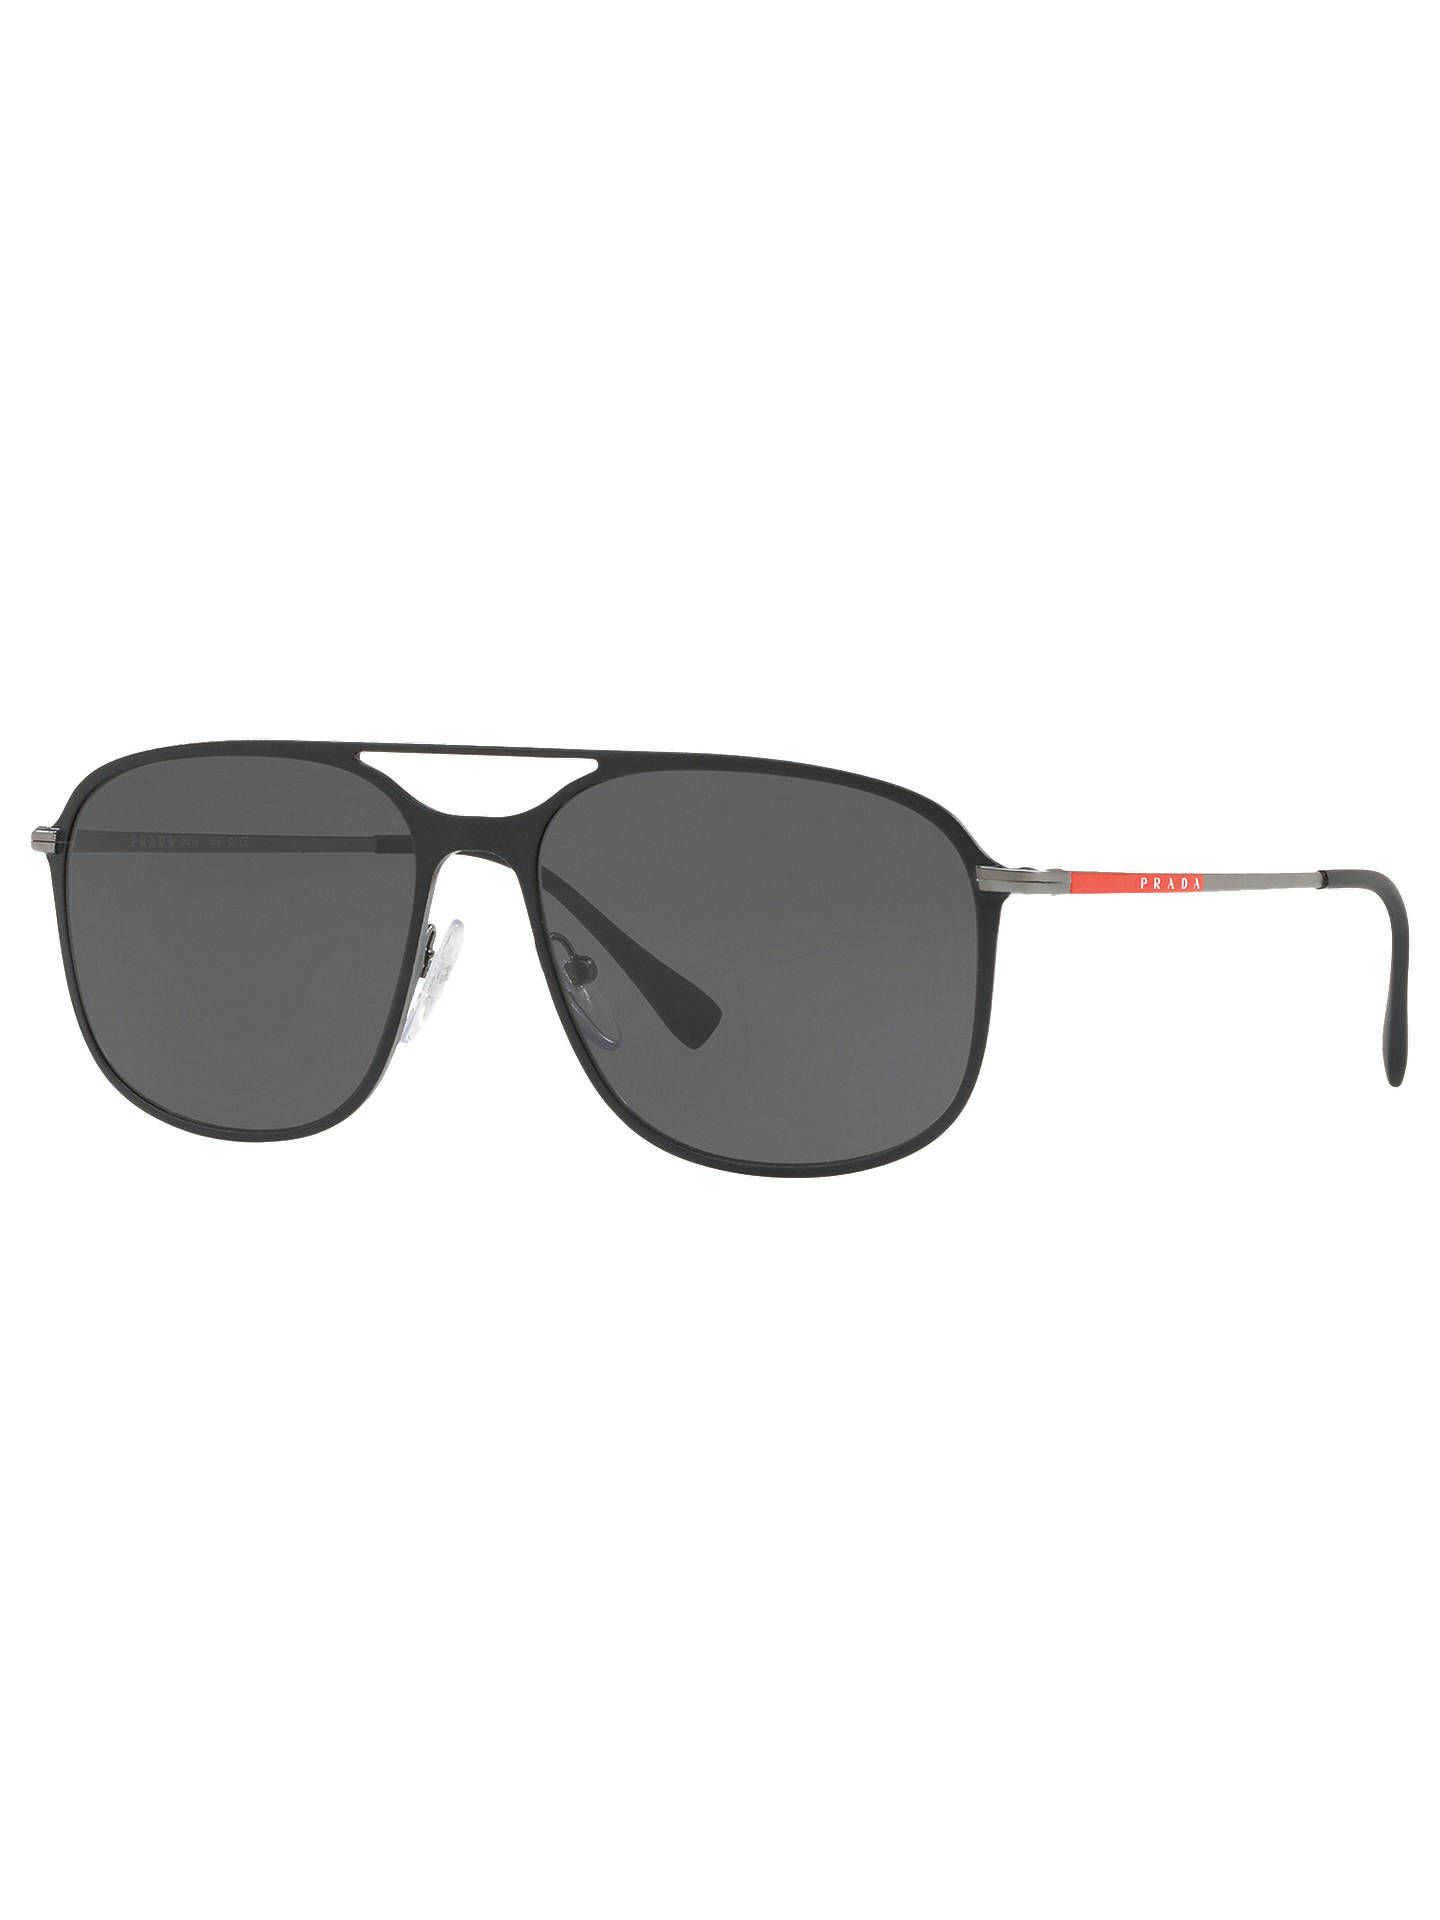 BuyPrada 53TS 56 Men's Aviator Sunglasses, Black Online at johnlewis.com